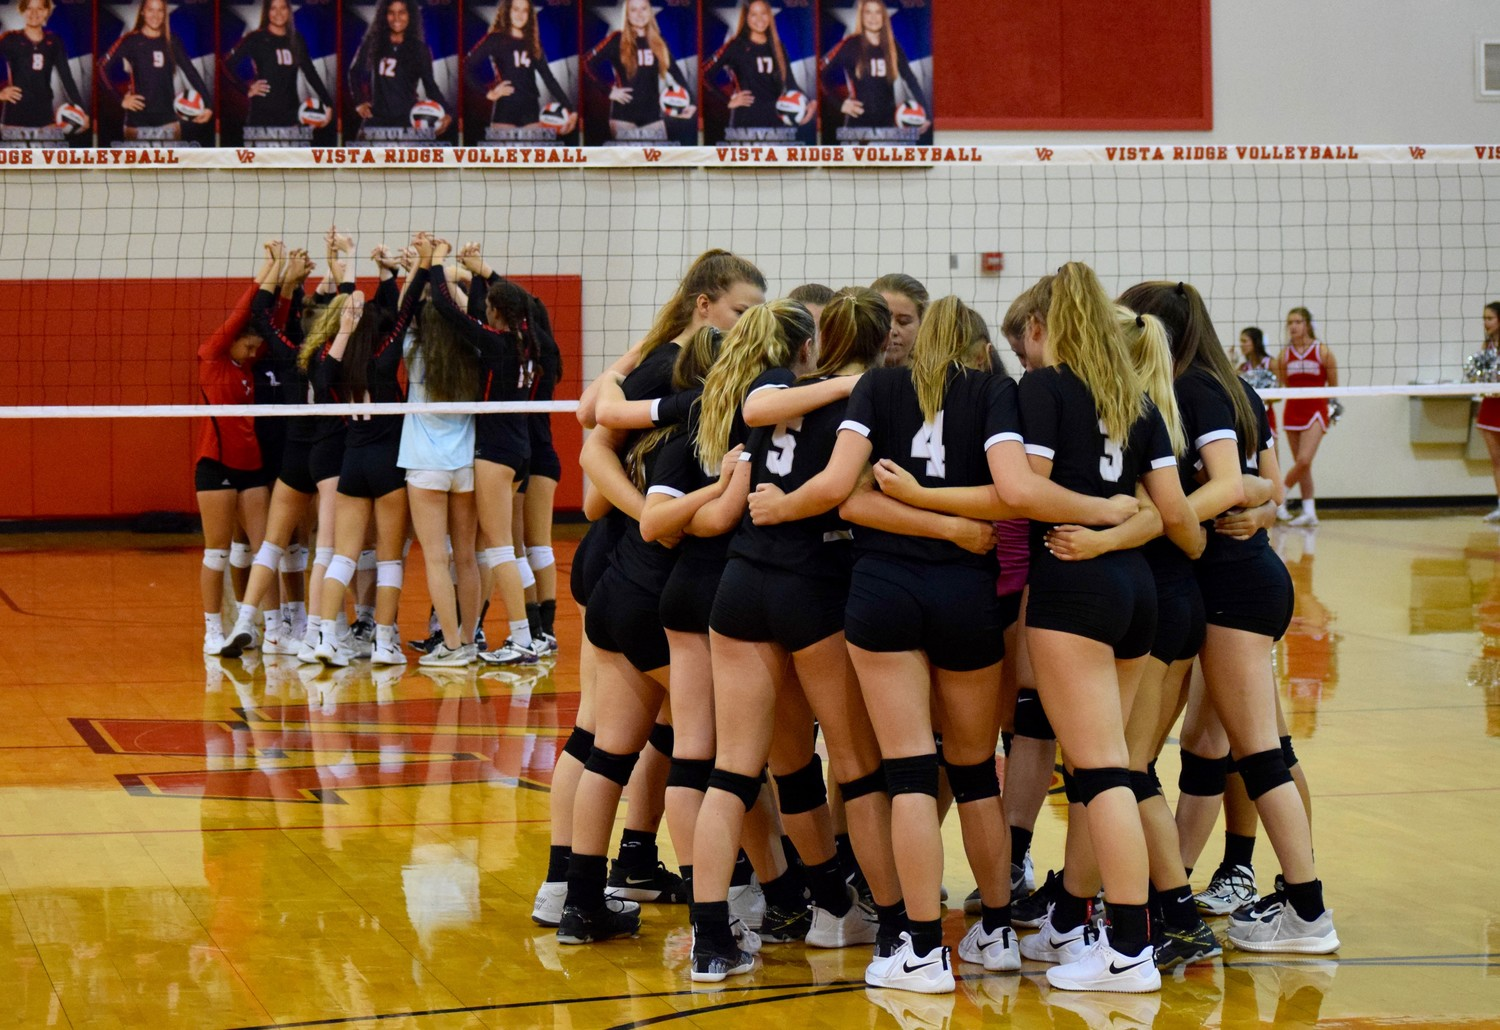 Vista Ridge swept Vandegrift 3-0 (25-15, 25-22, 25-17) to pick up their second straight district win on Tuesday night.